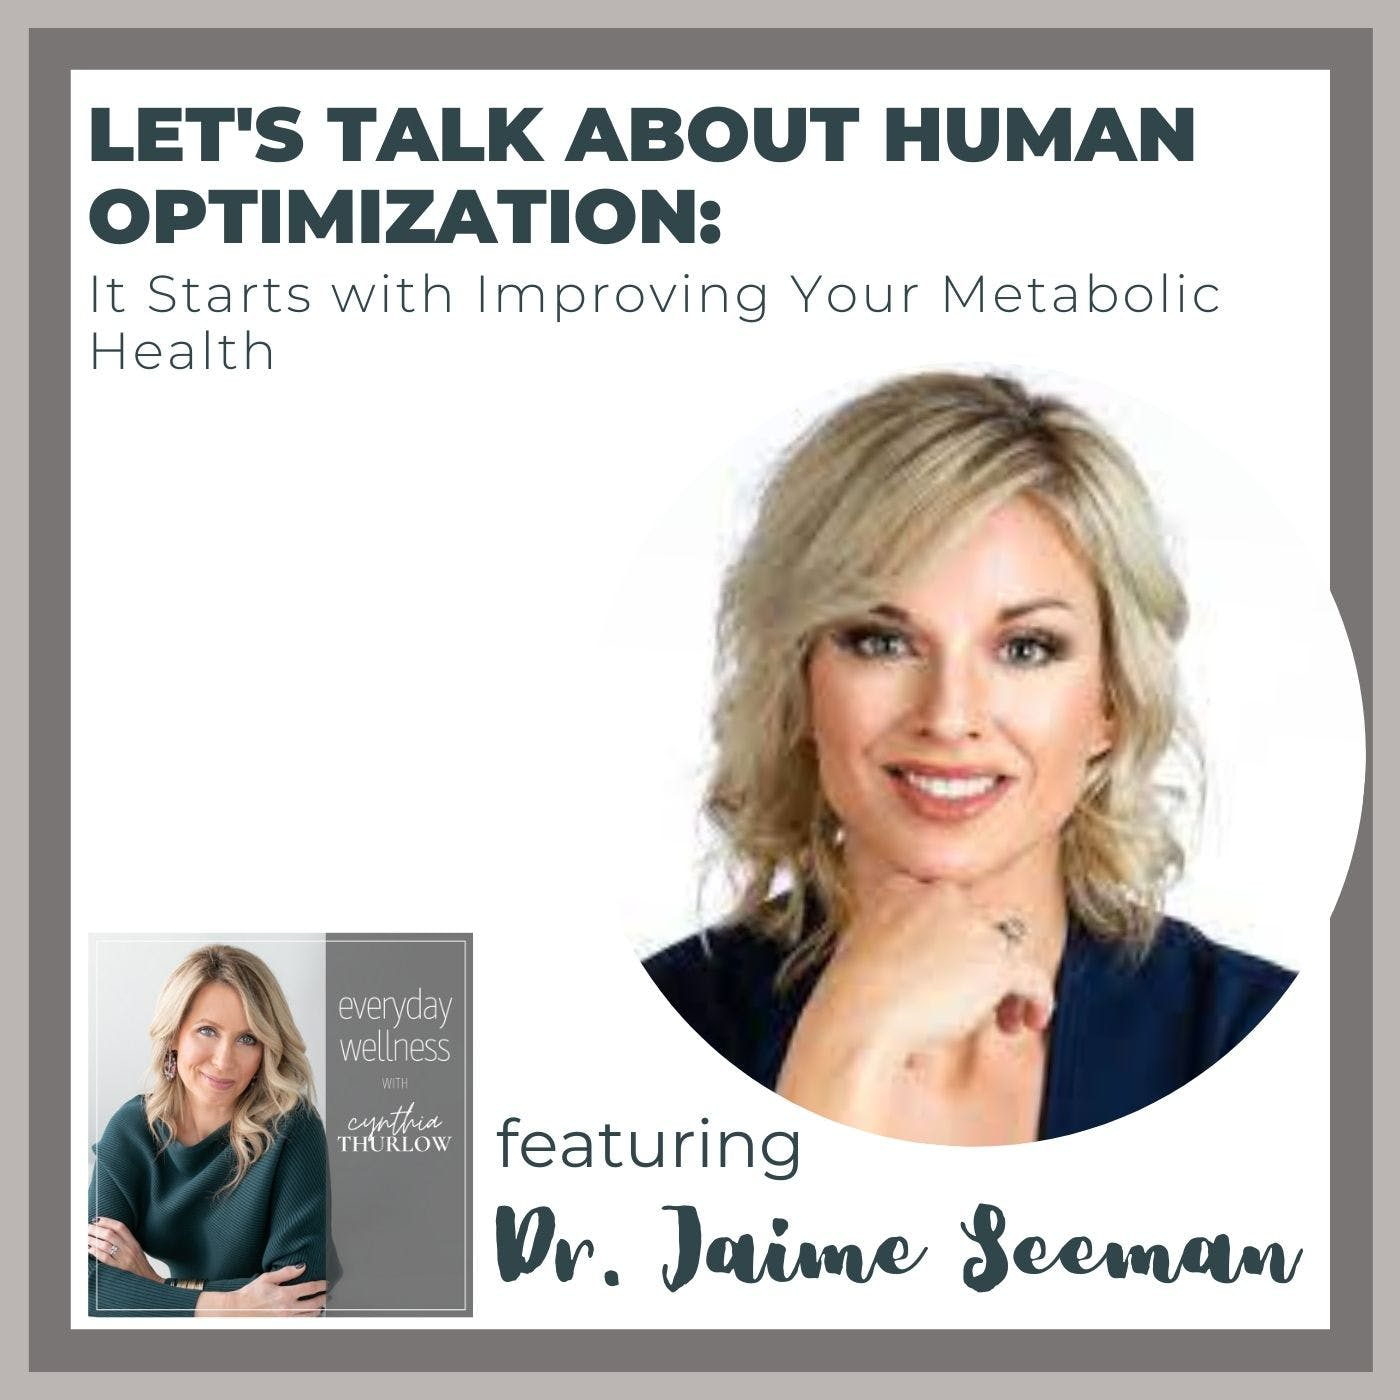 Ep. 167 Let's Talk About Human Optimization: It Starts with Improving Your Metabolic Health with Dr. Jaime Seeman